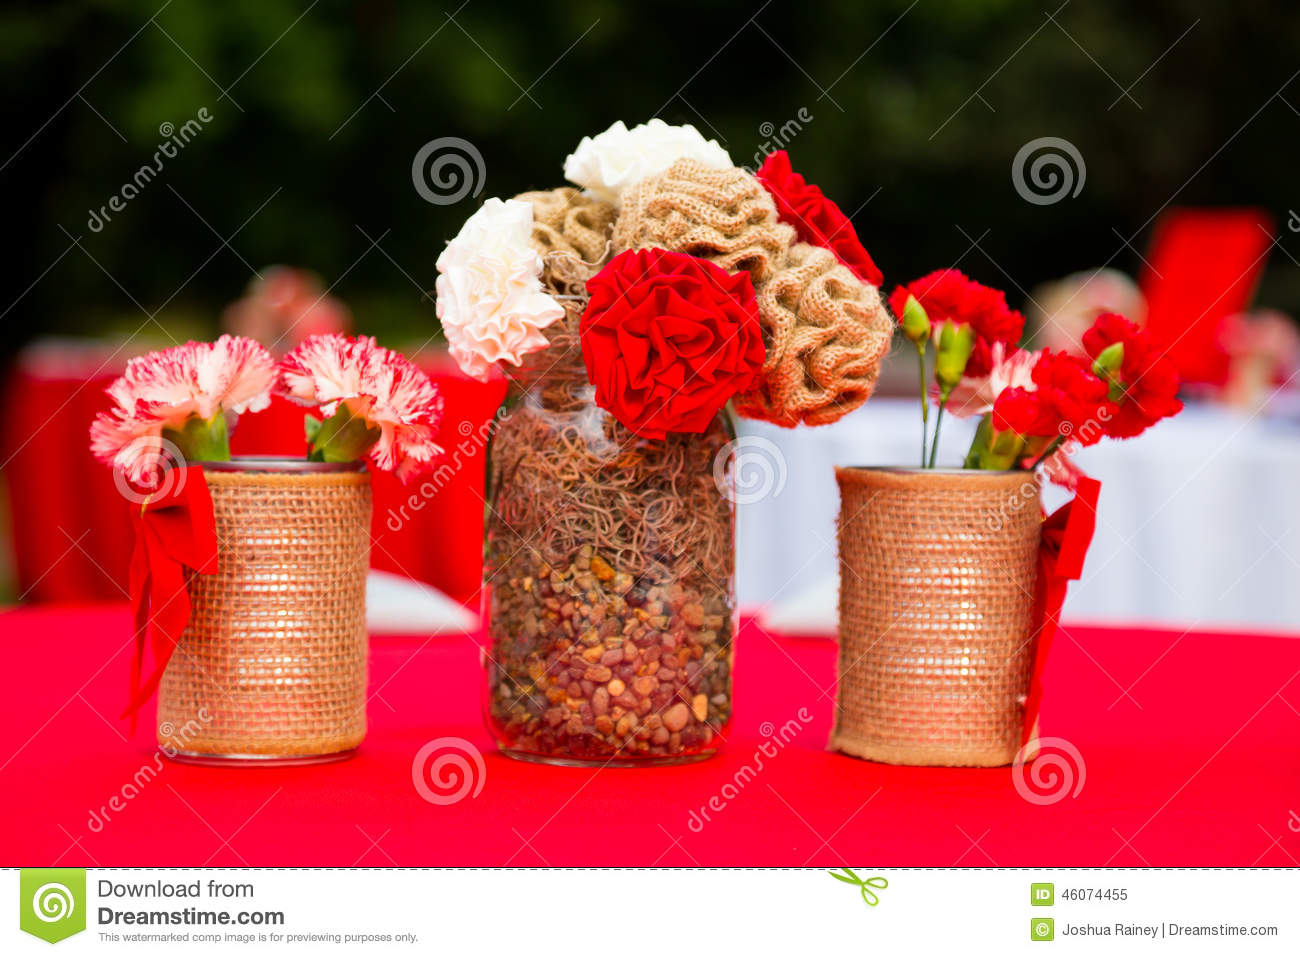 Red and White Wedding Decor Flowers